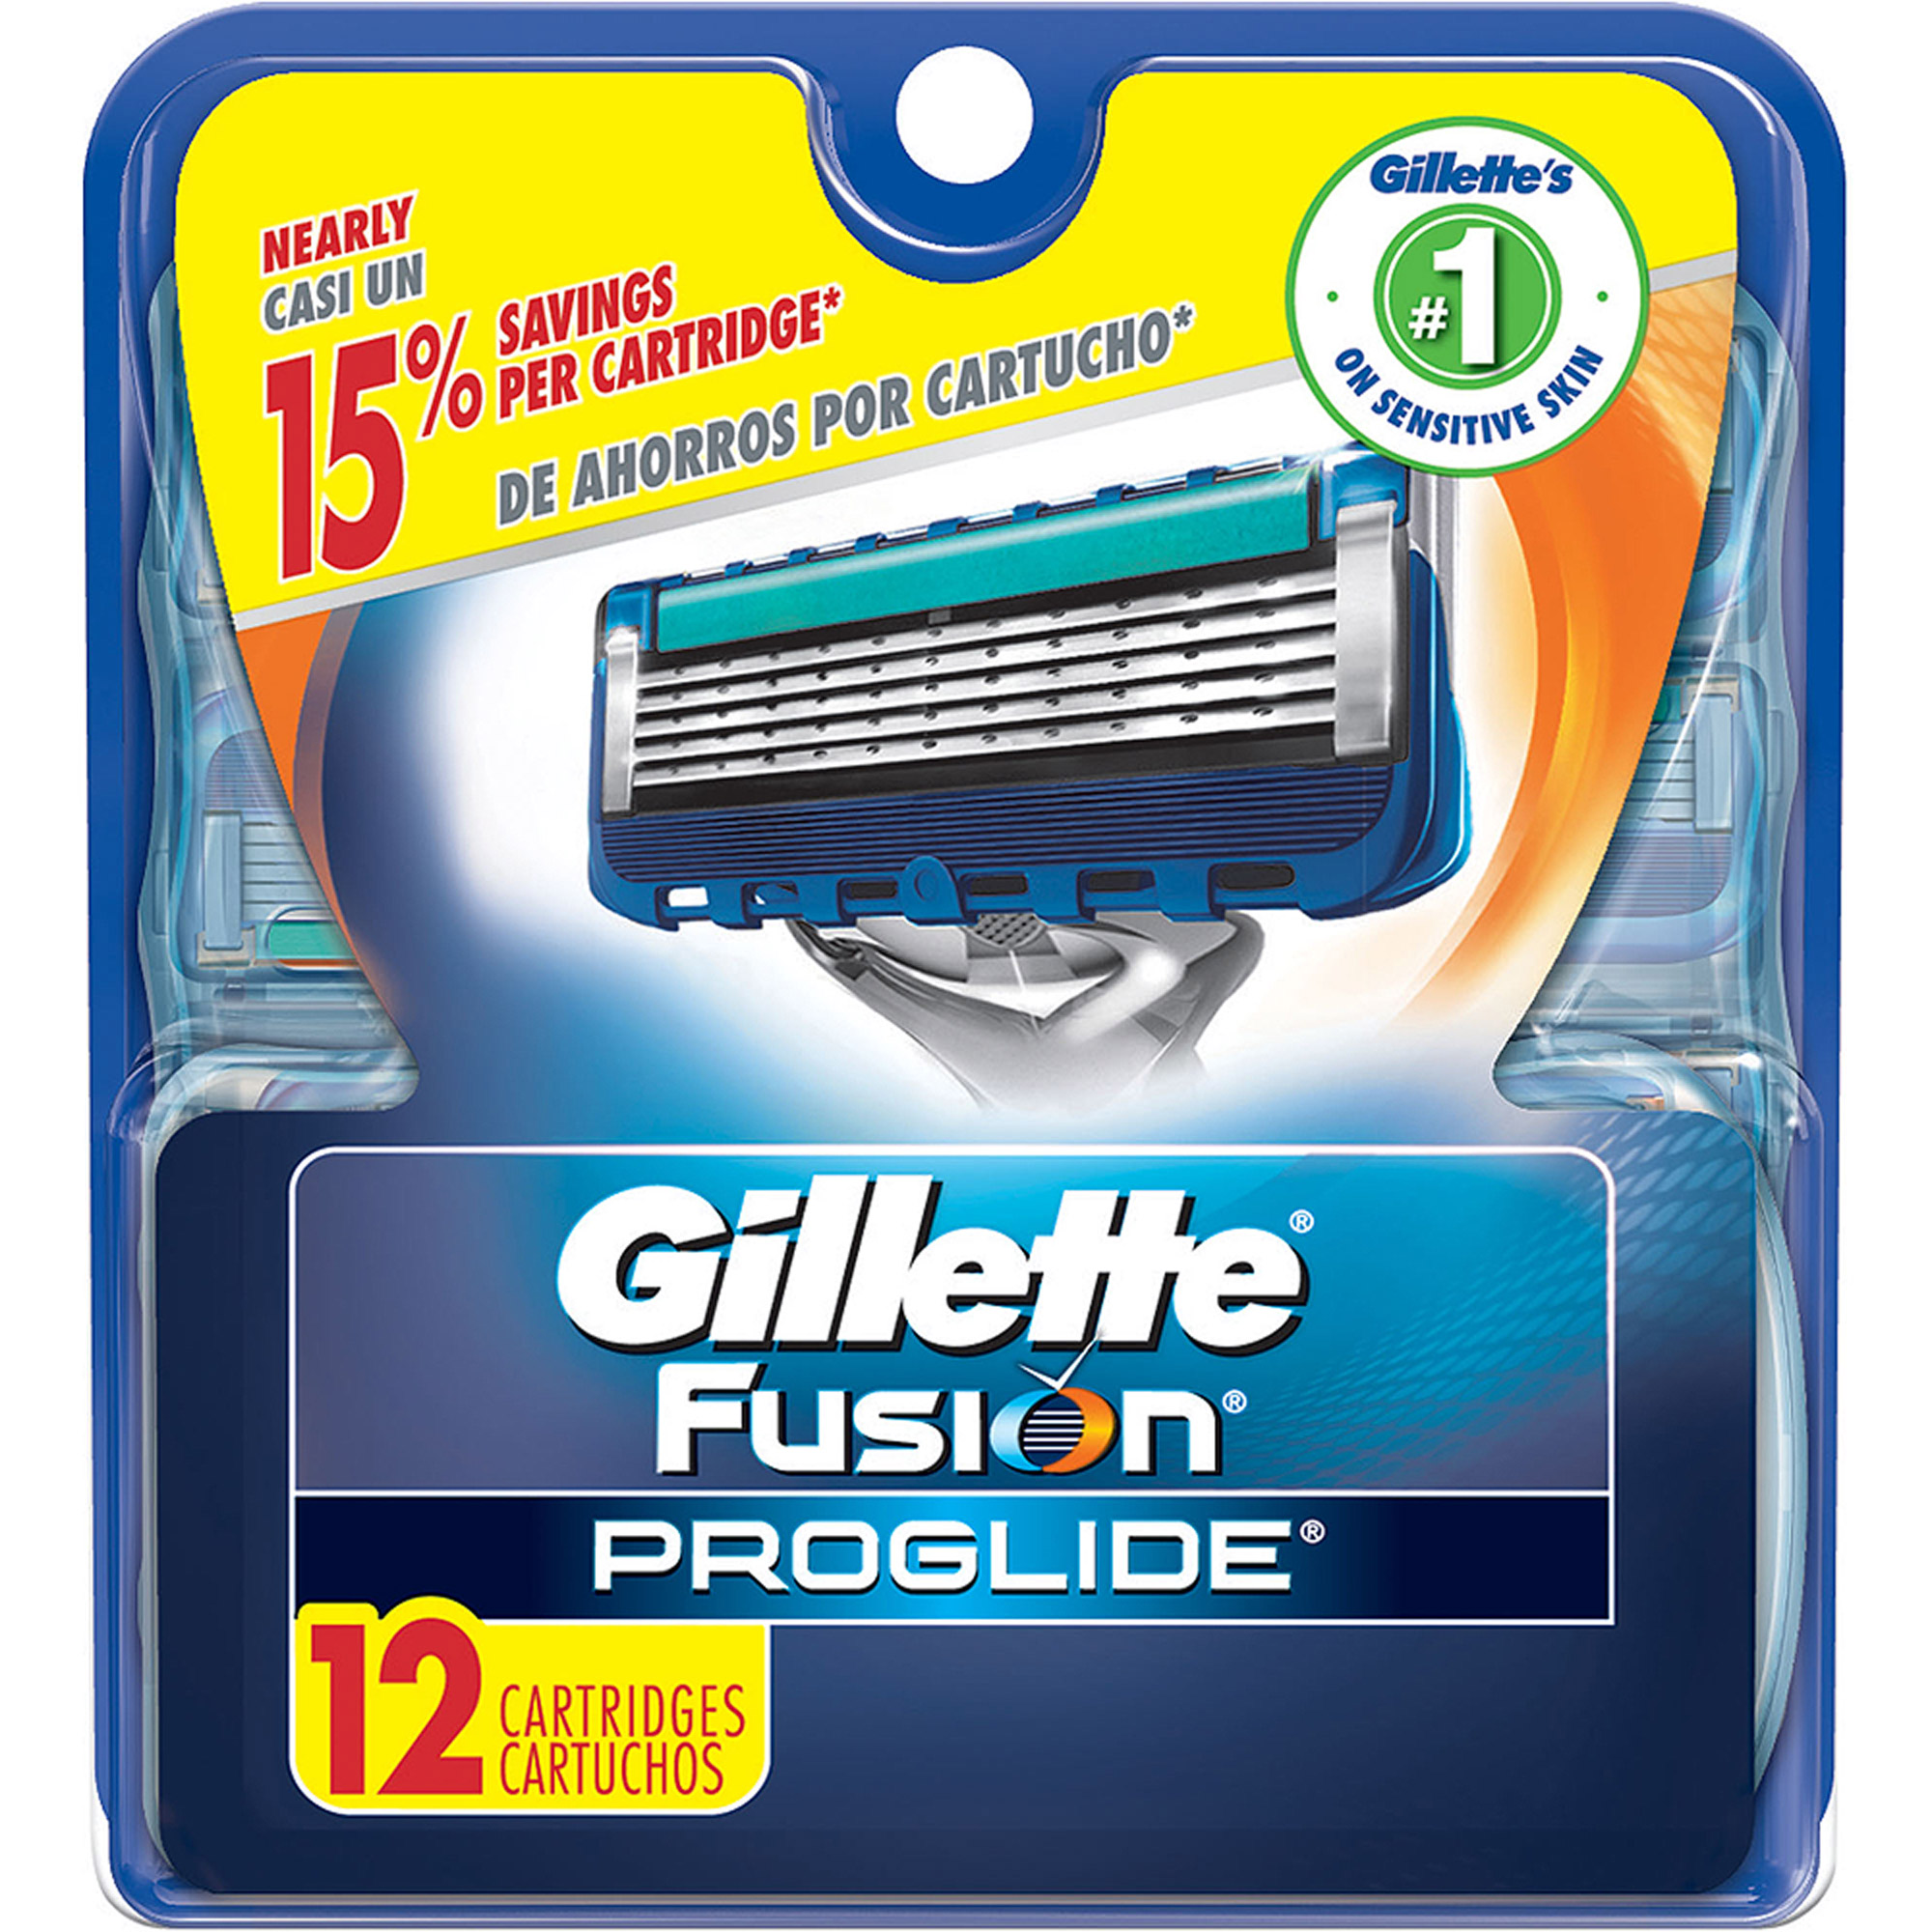 Gillette Fusion ProGlide Razor Cartridge Refills, 12 count